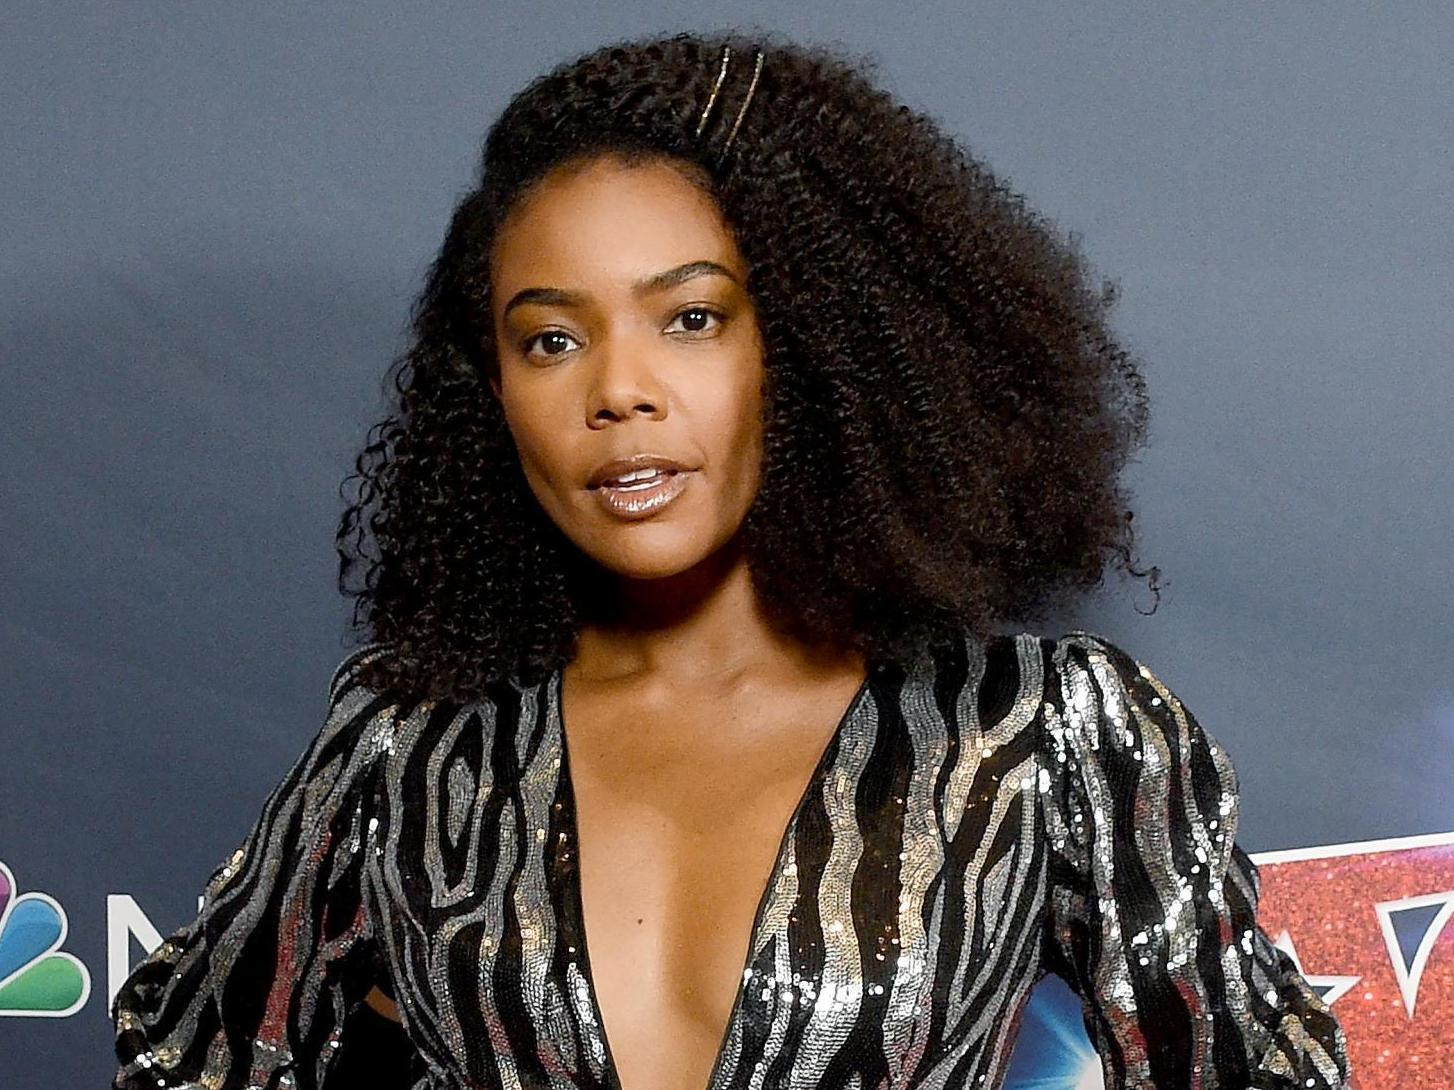 Gabrielle Union shares photos of hairstyles that were 'too black' for America's Got Talent